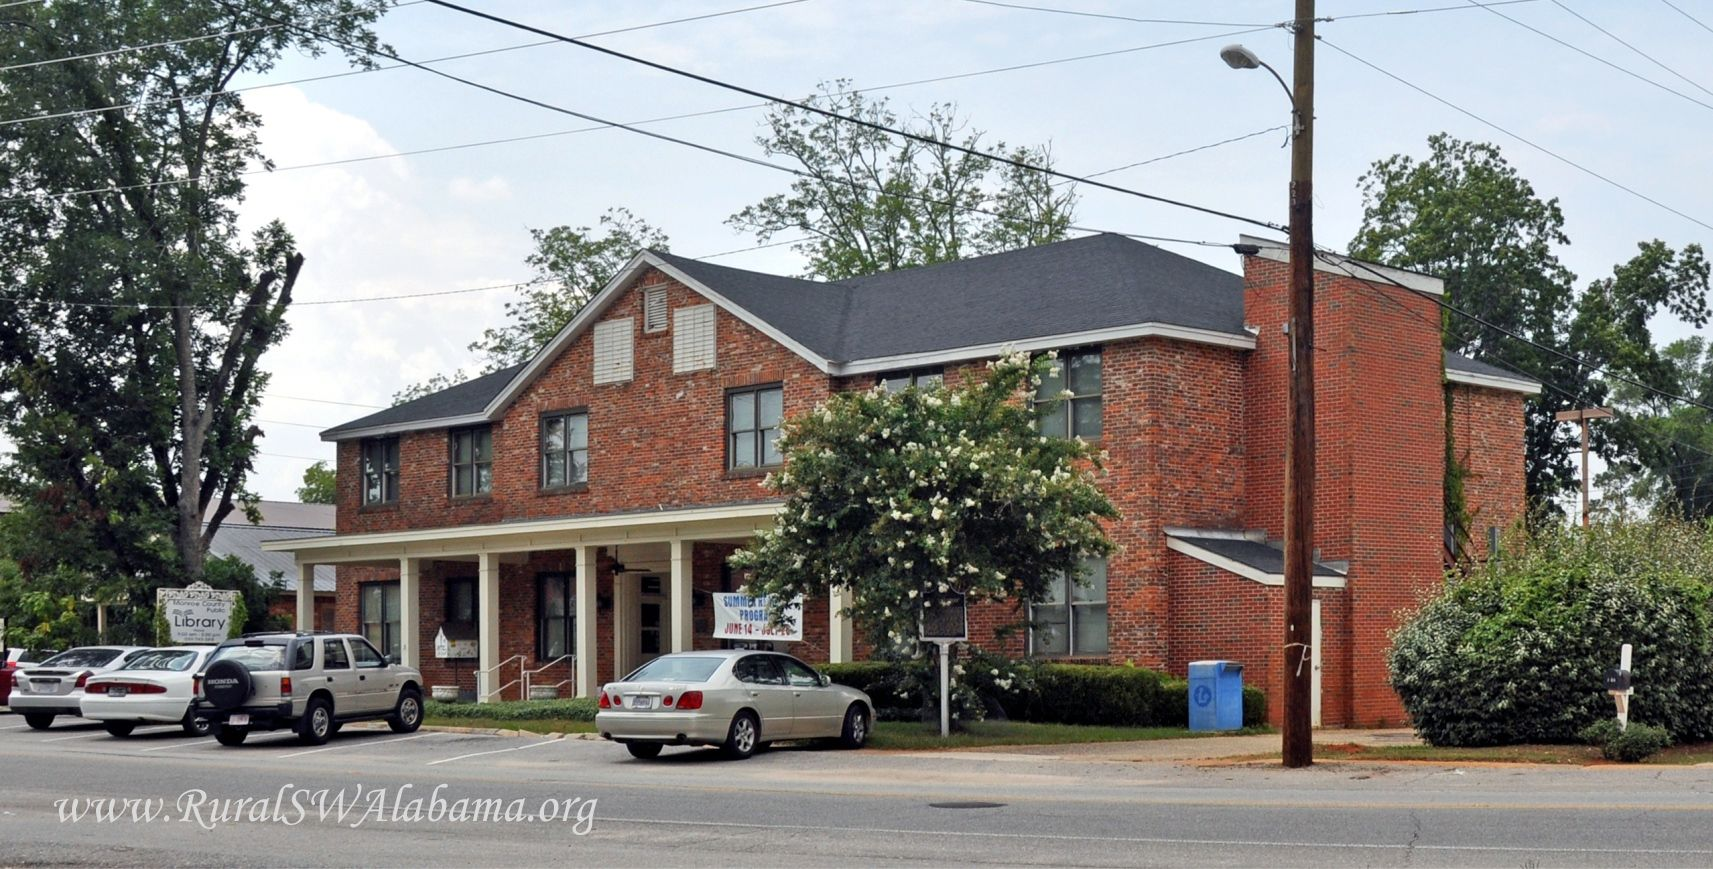 Old La Salle Hotel At Monroeville Al Now The Monroe County Public Library